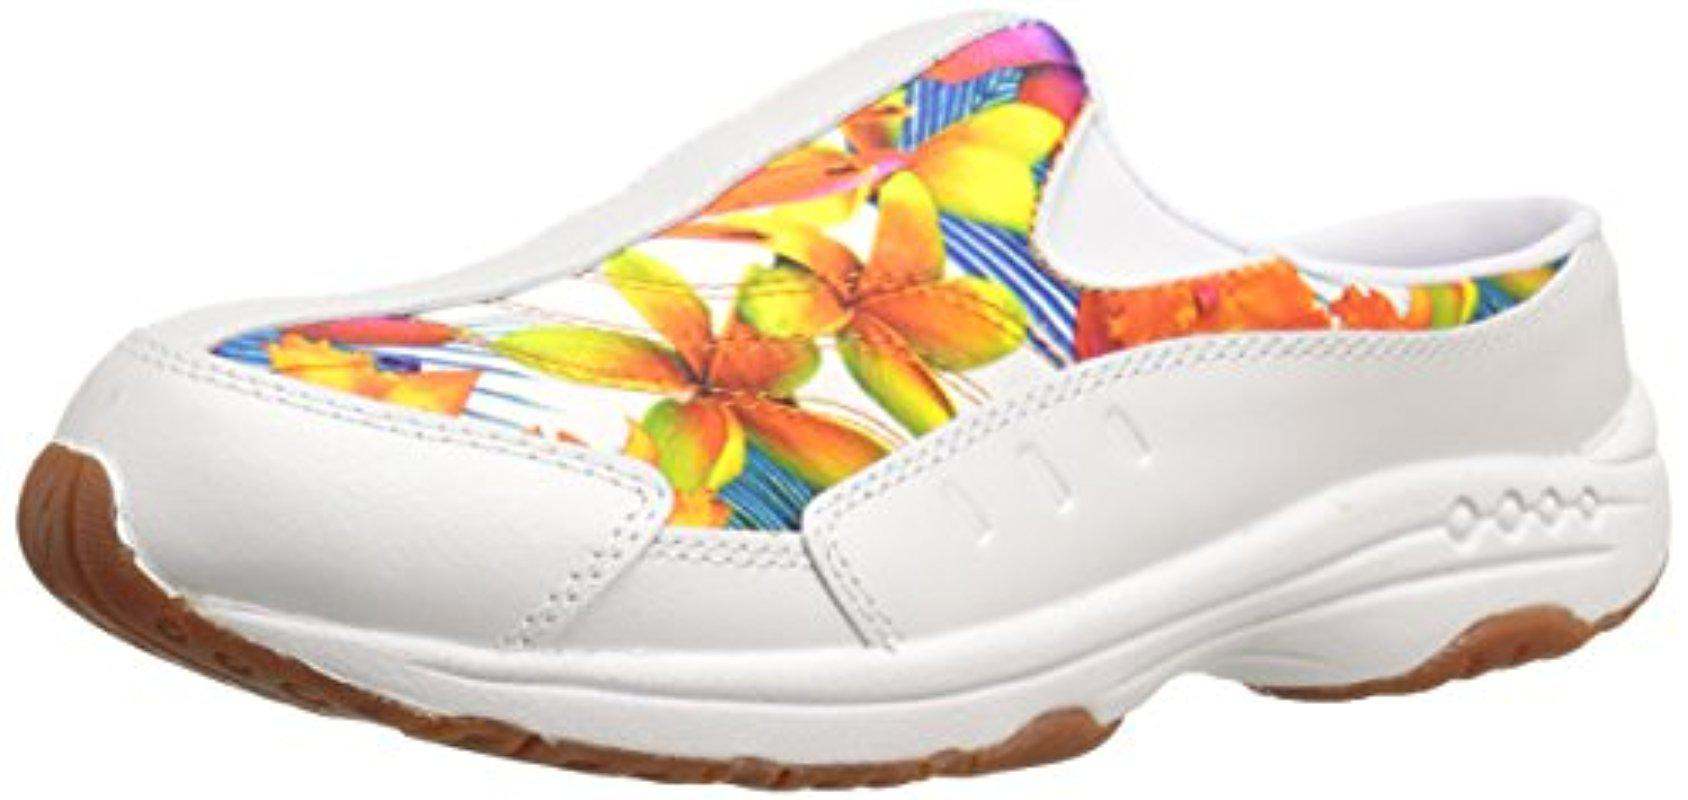 Easy Spirit - White Traveltime Mule - Lyst. View Fullscreen. There was a  problem loading this image.